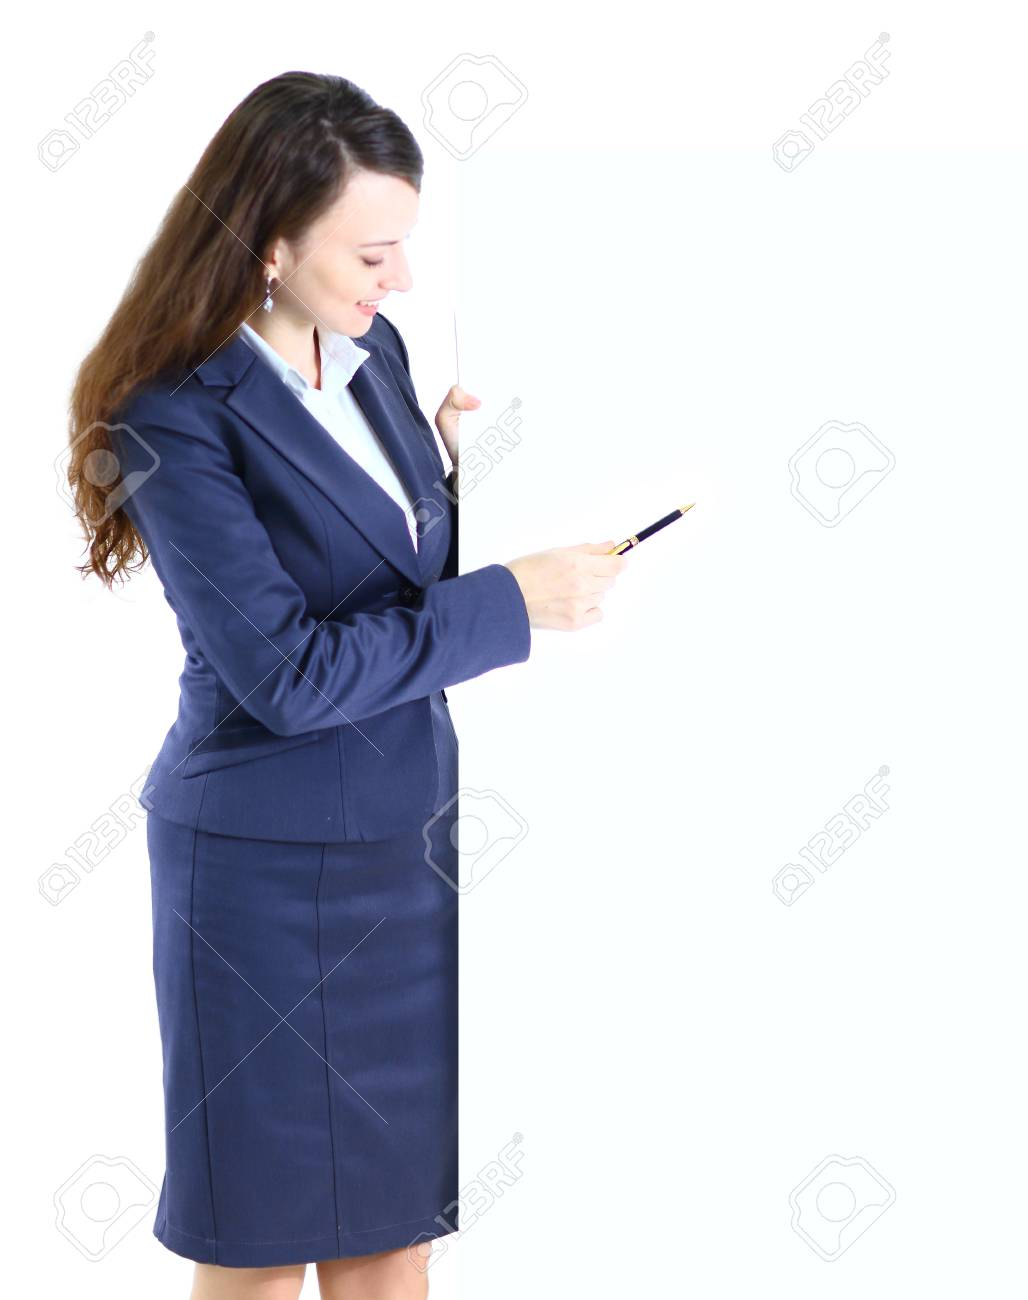 Happy smiling young business woman showing blank signboard, isolated on white background Stock Photo - 25395990